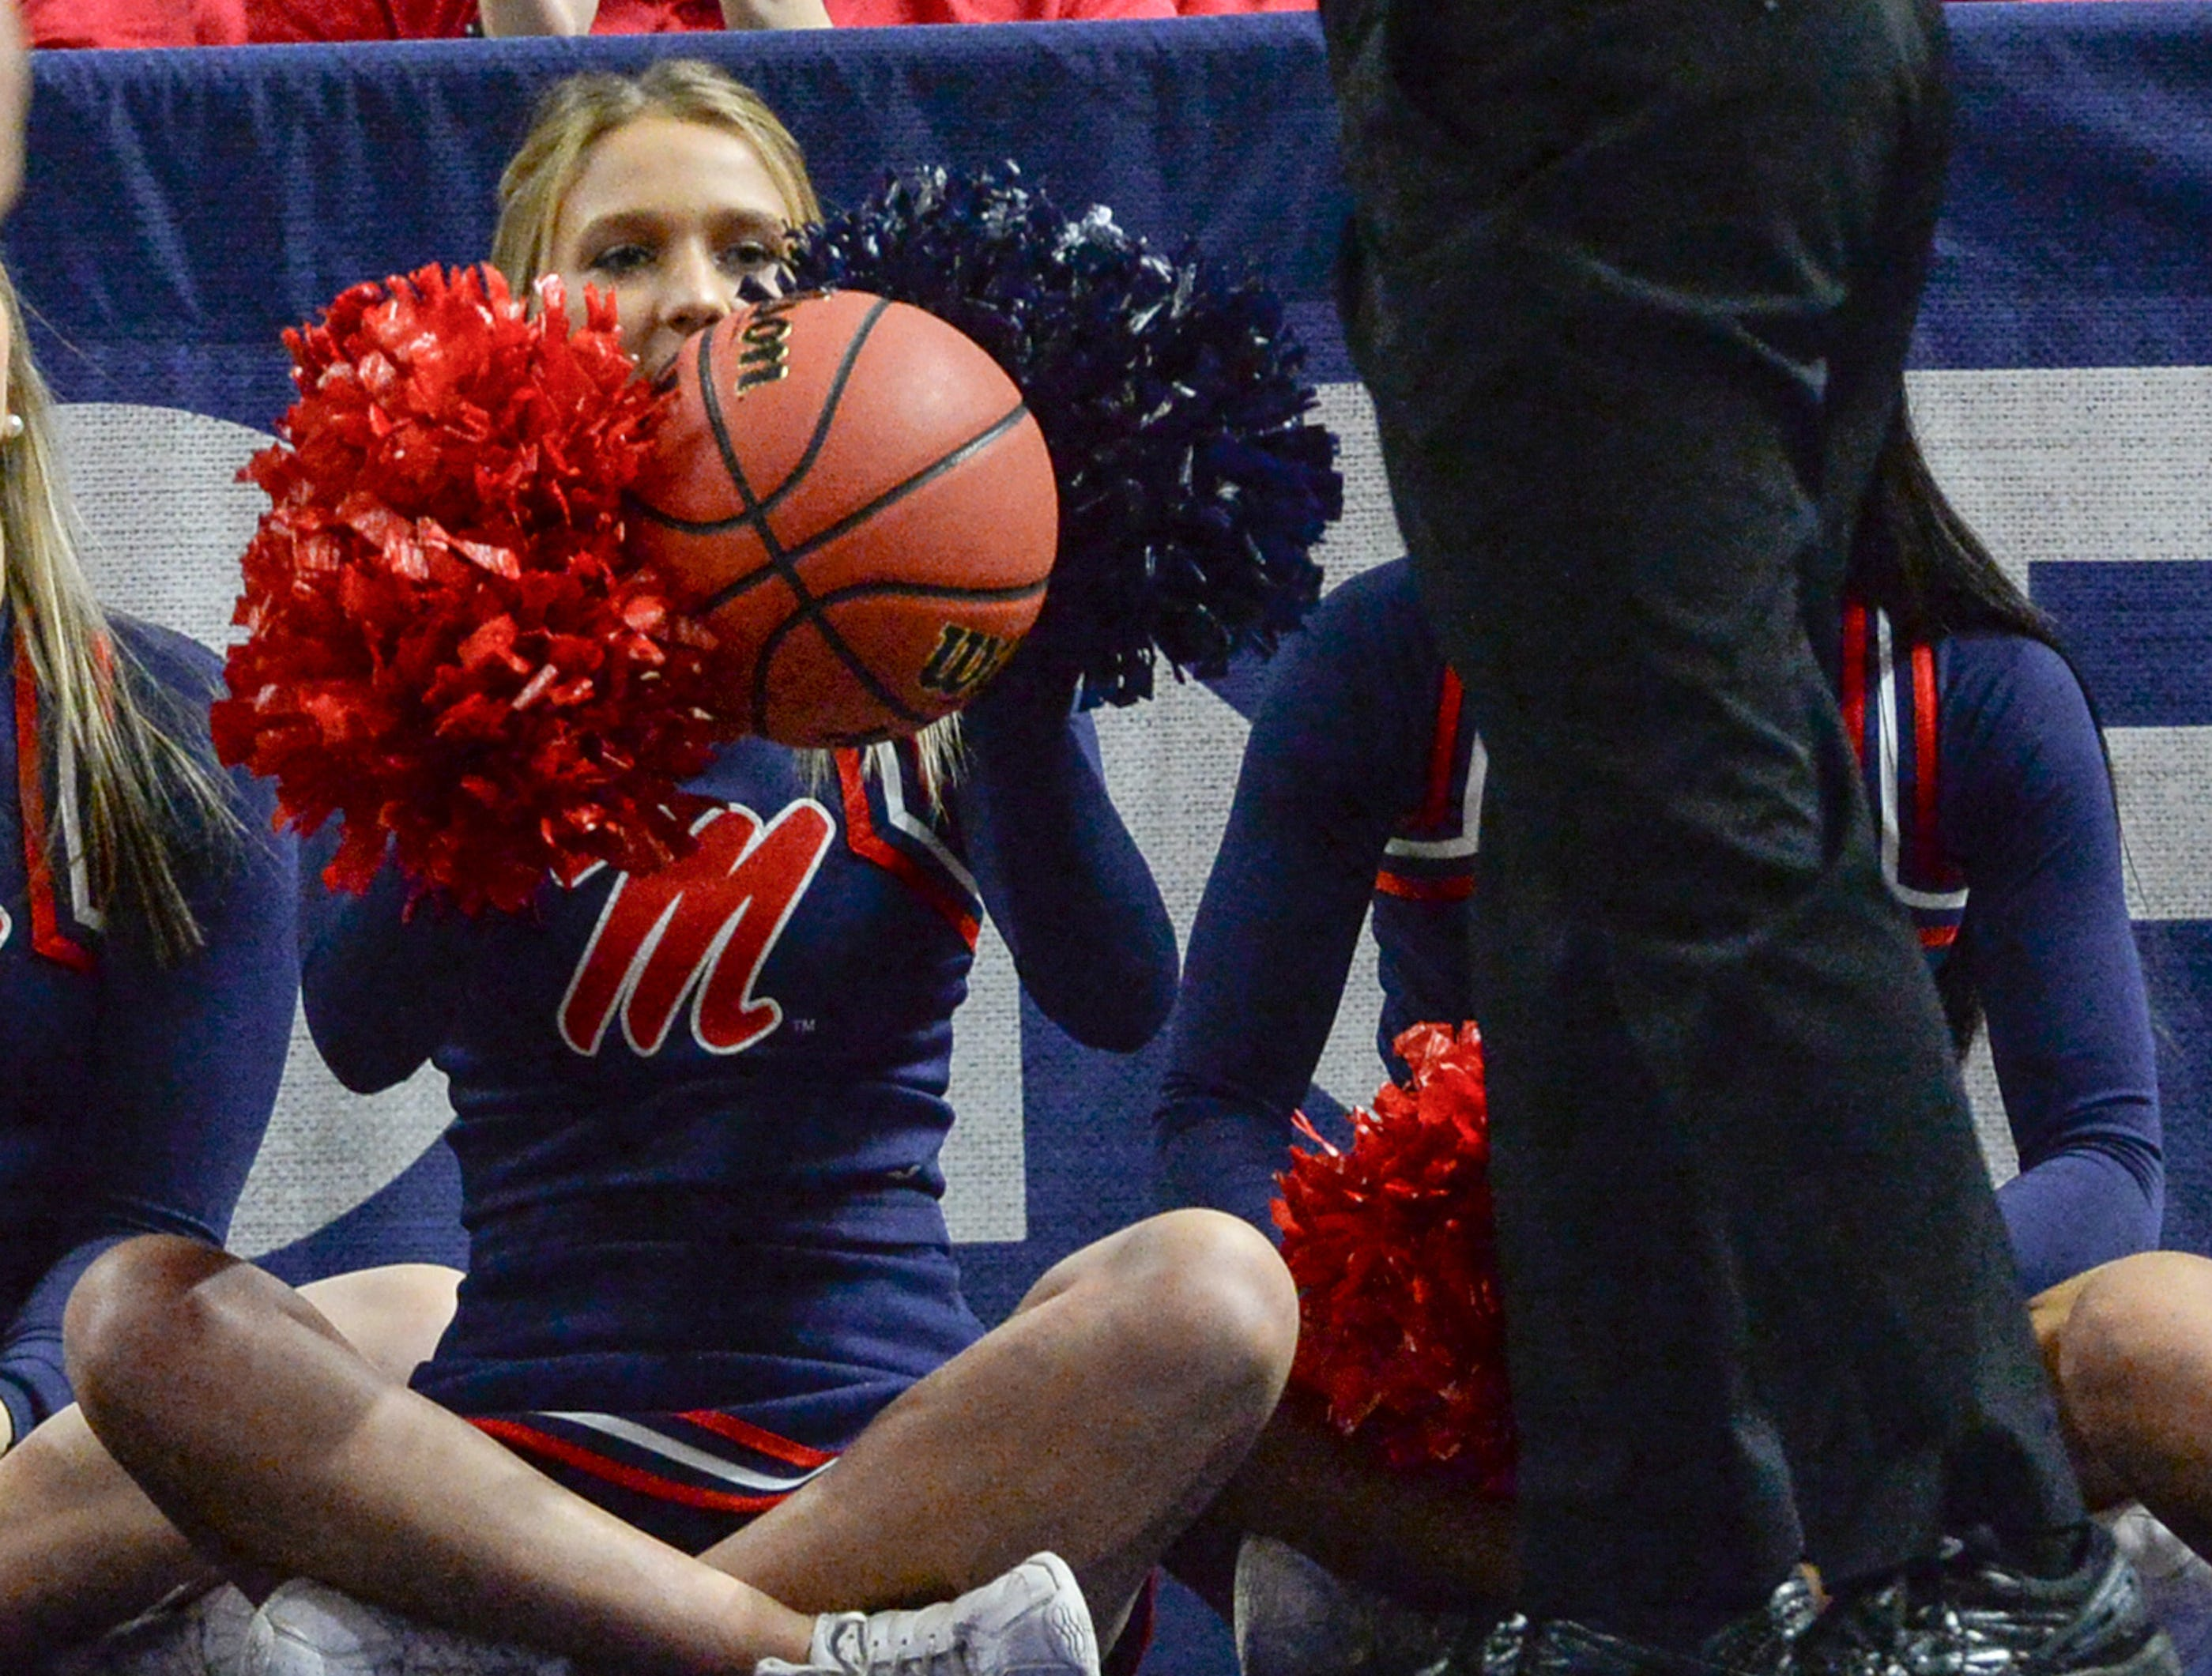 An Ole Miss cheerleader catches a loose basketball during the first SEC Women's basketball tournament game with Ole Miss and Florida started in Greenville Wednesday. The tournament lasts through Sunday.